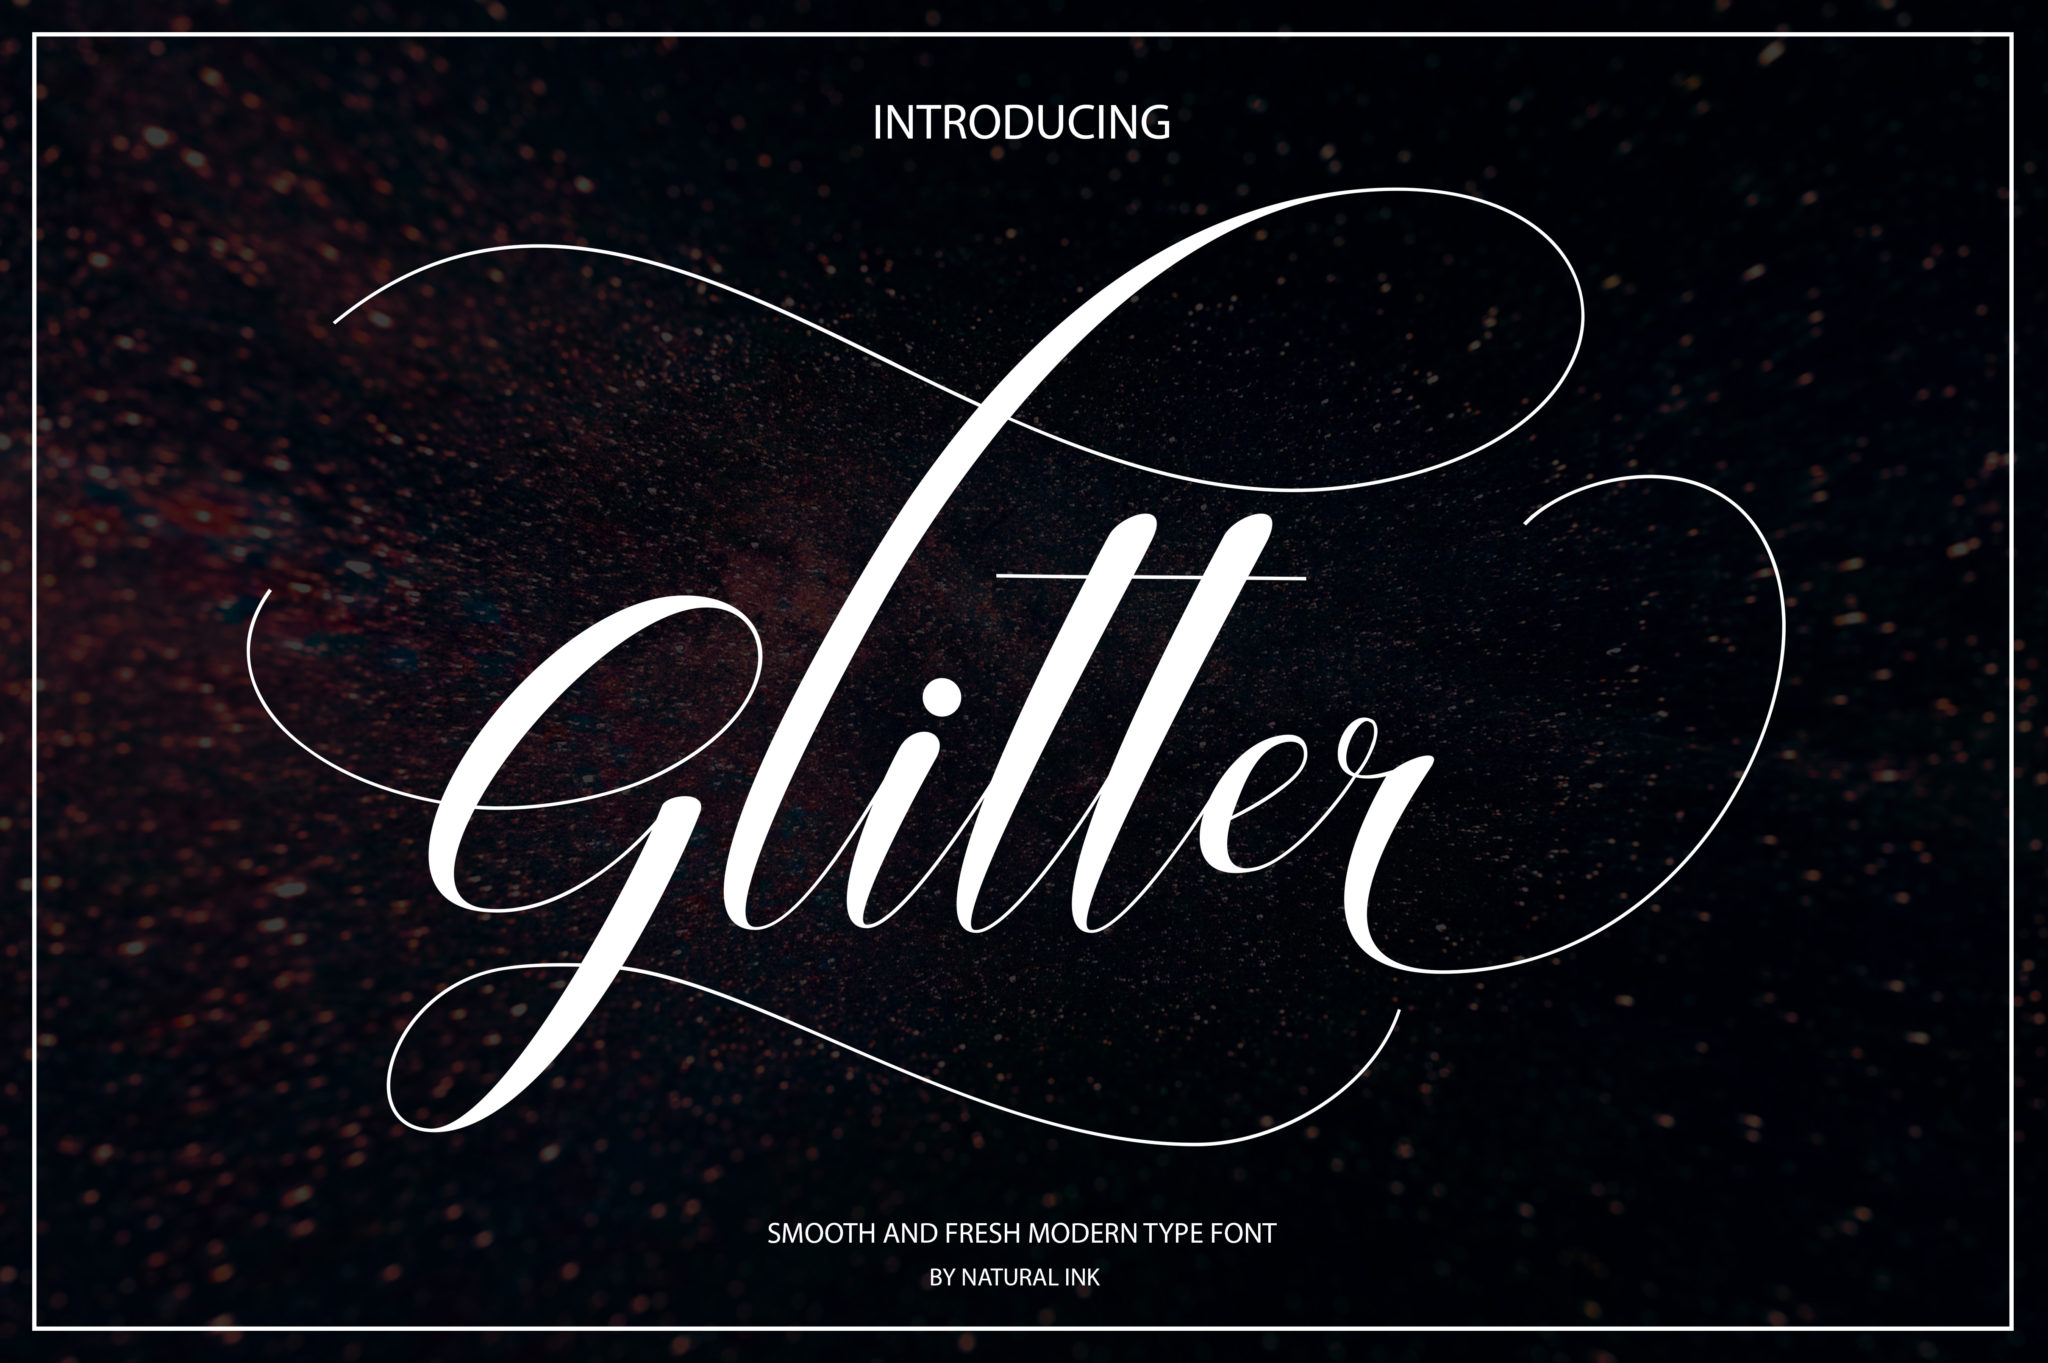 Font Deals for Commercial Use from Crella